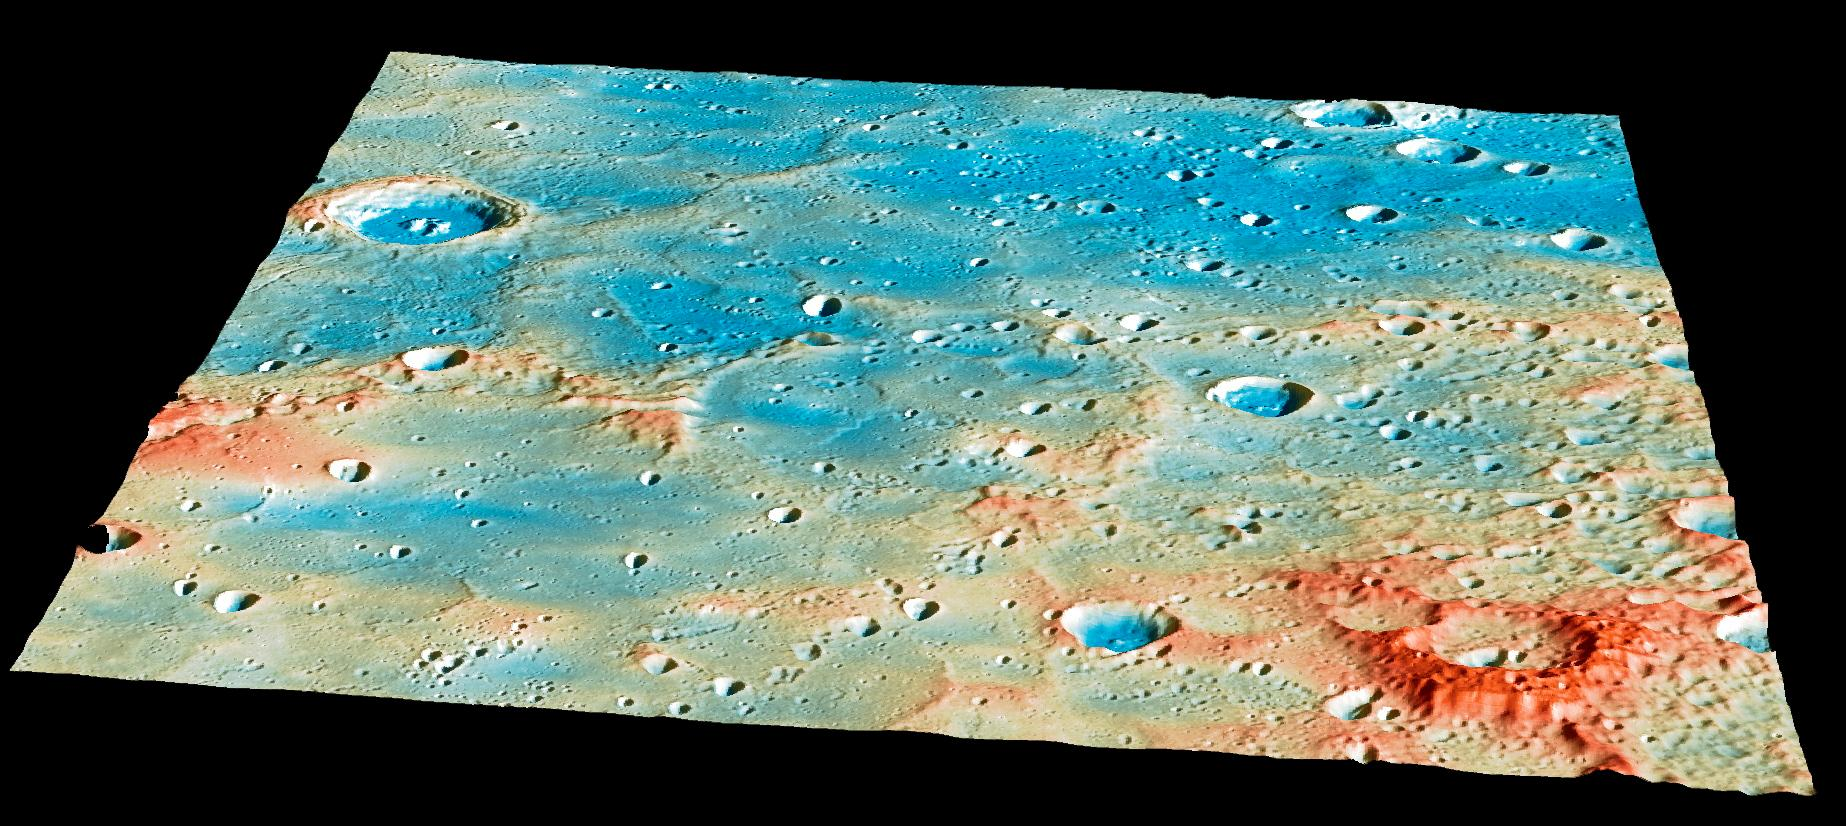 Overview of MESSENGER Spacecraft's Impact Region on Mercury